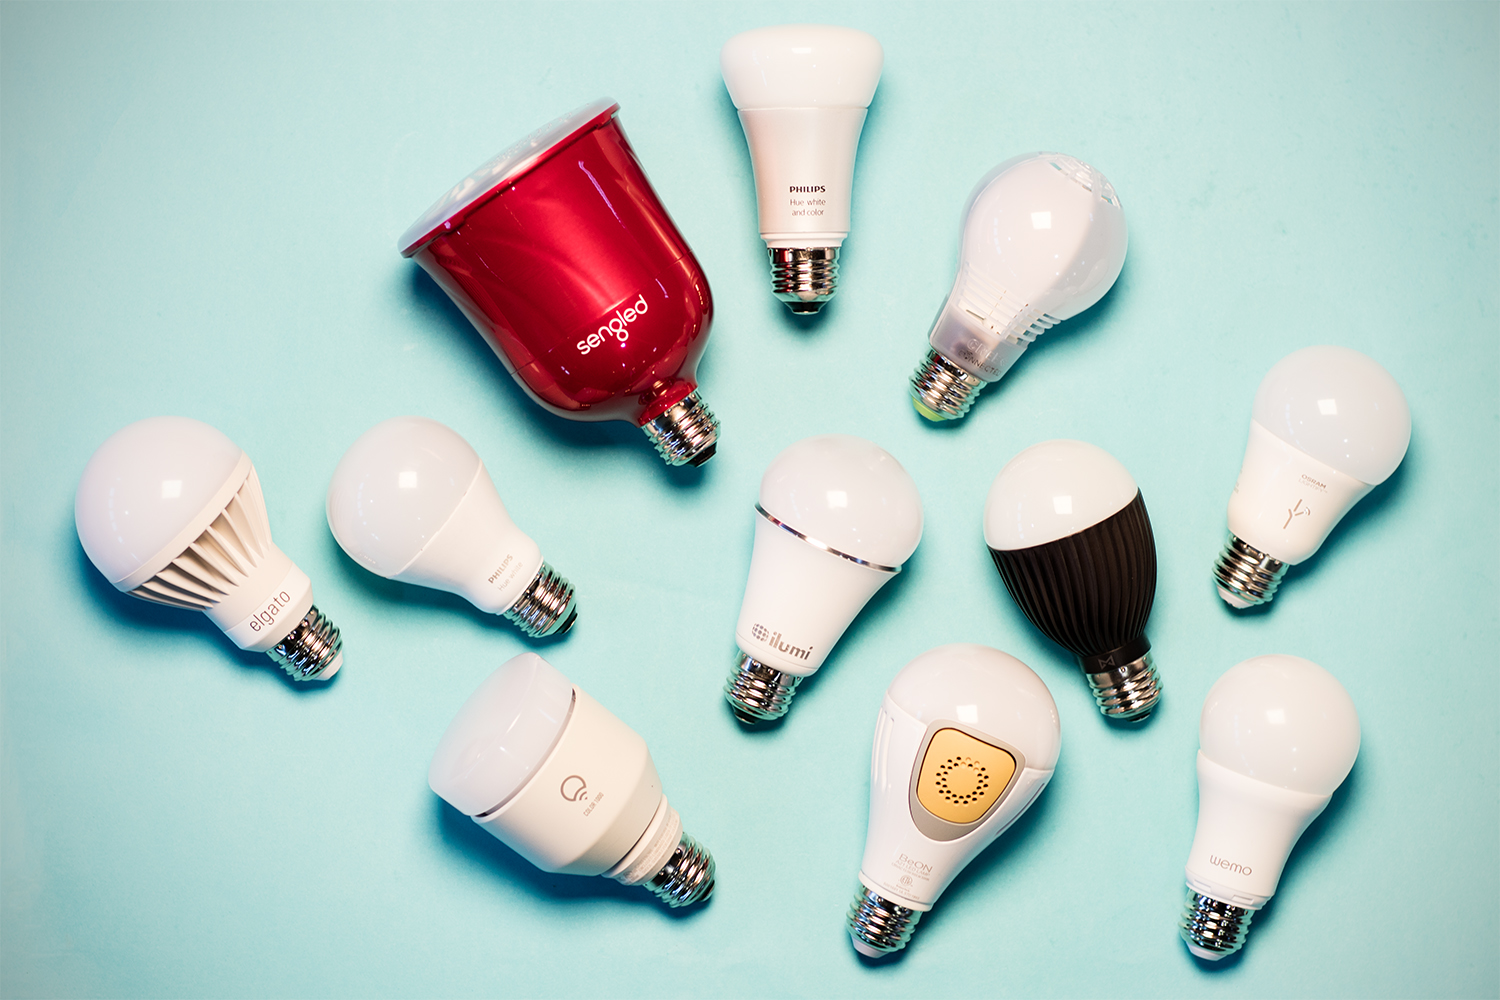 Hero image w/ all the smart bulbs in the article.